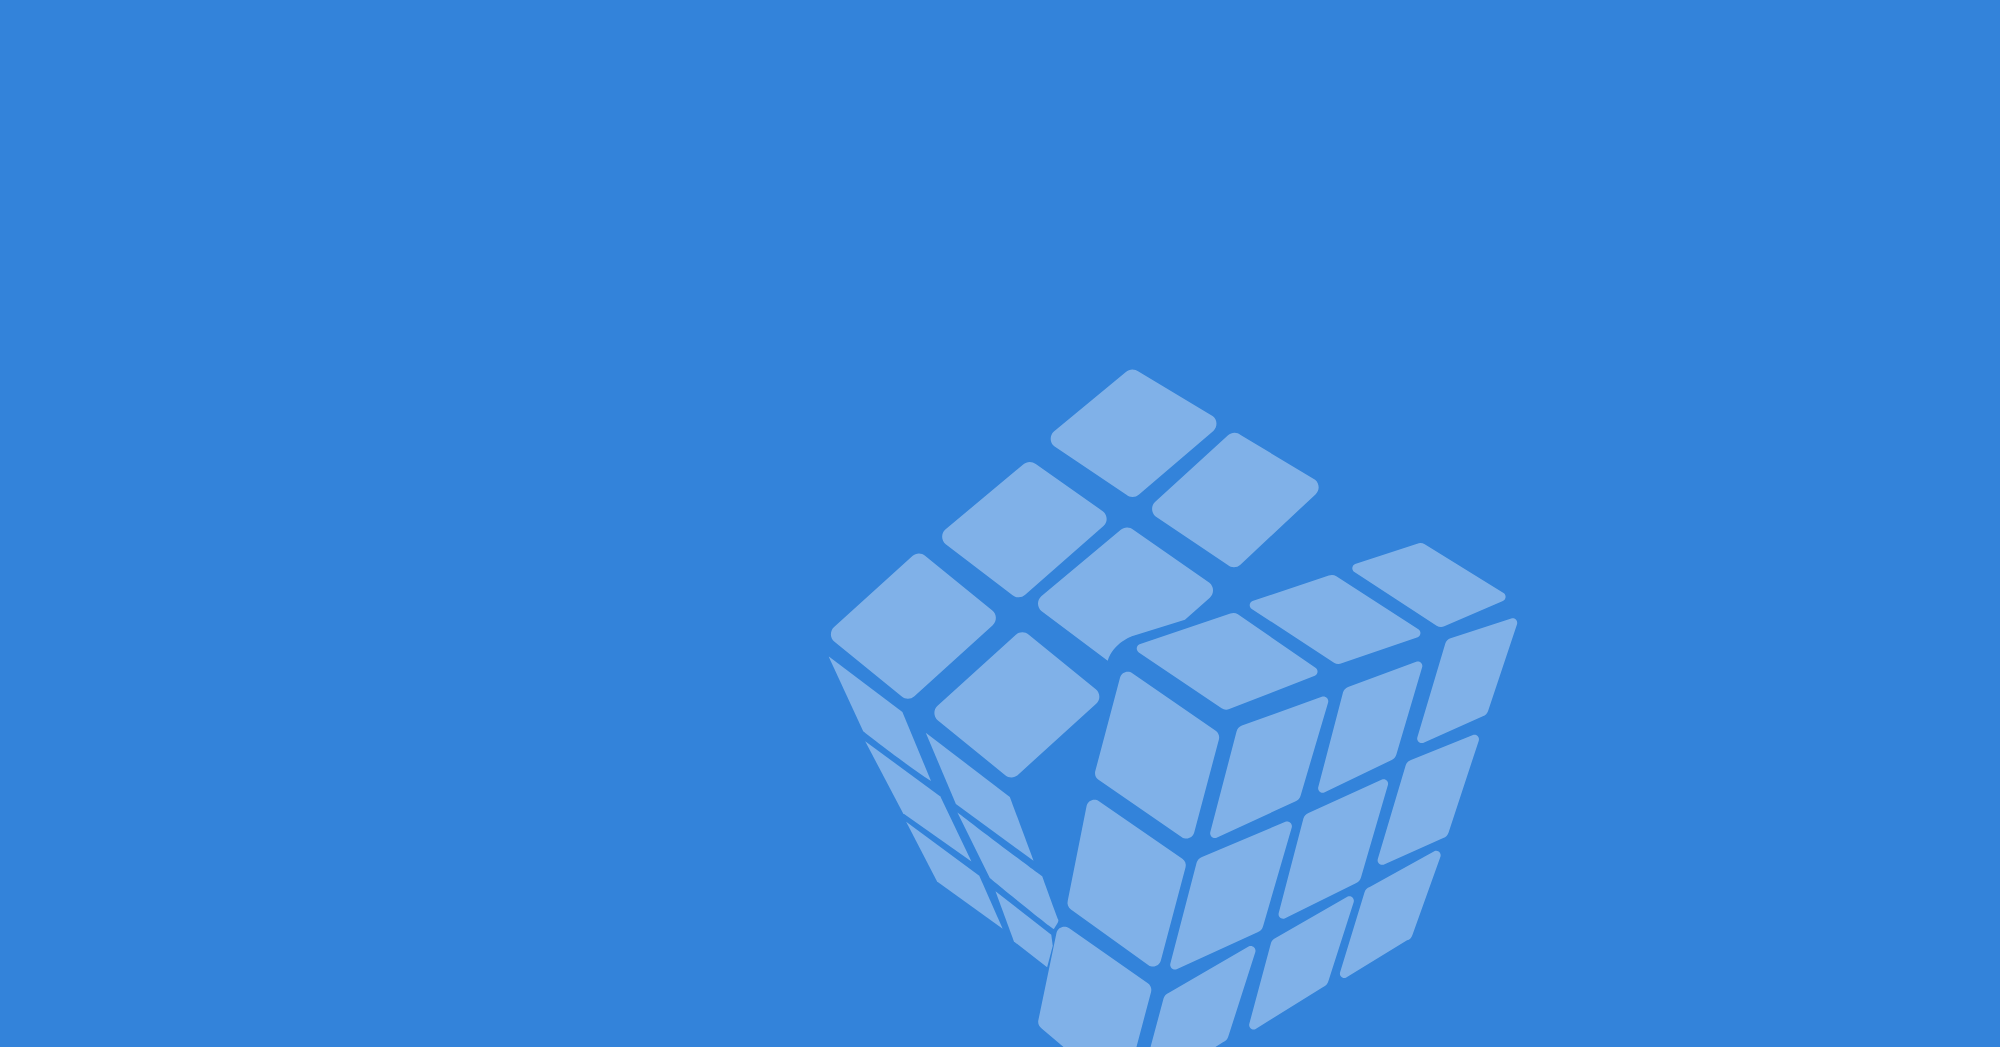 Pale blue Rubik's cube with one layer turning over a blue background.